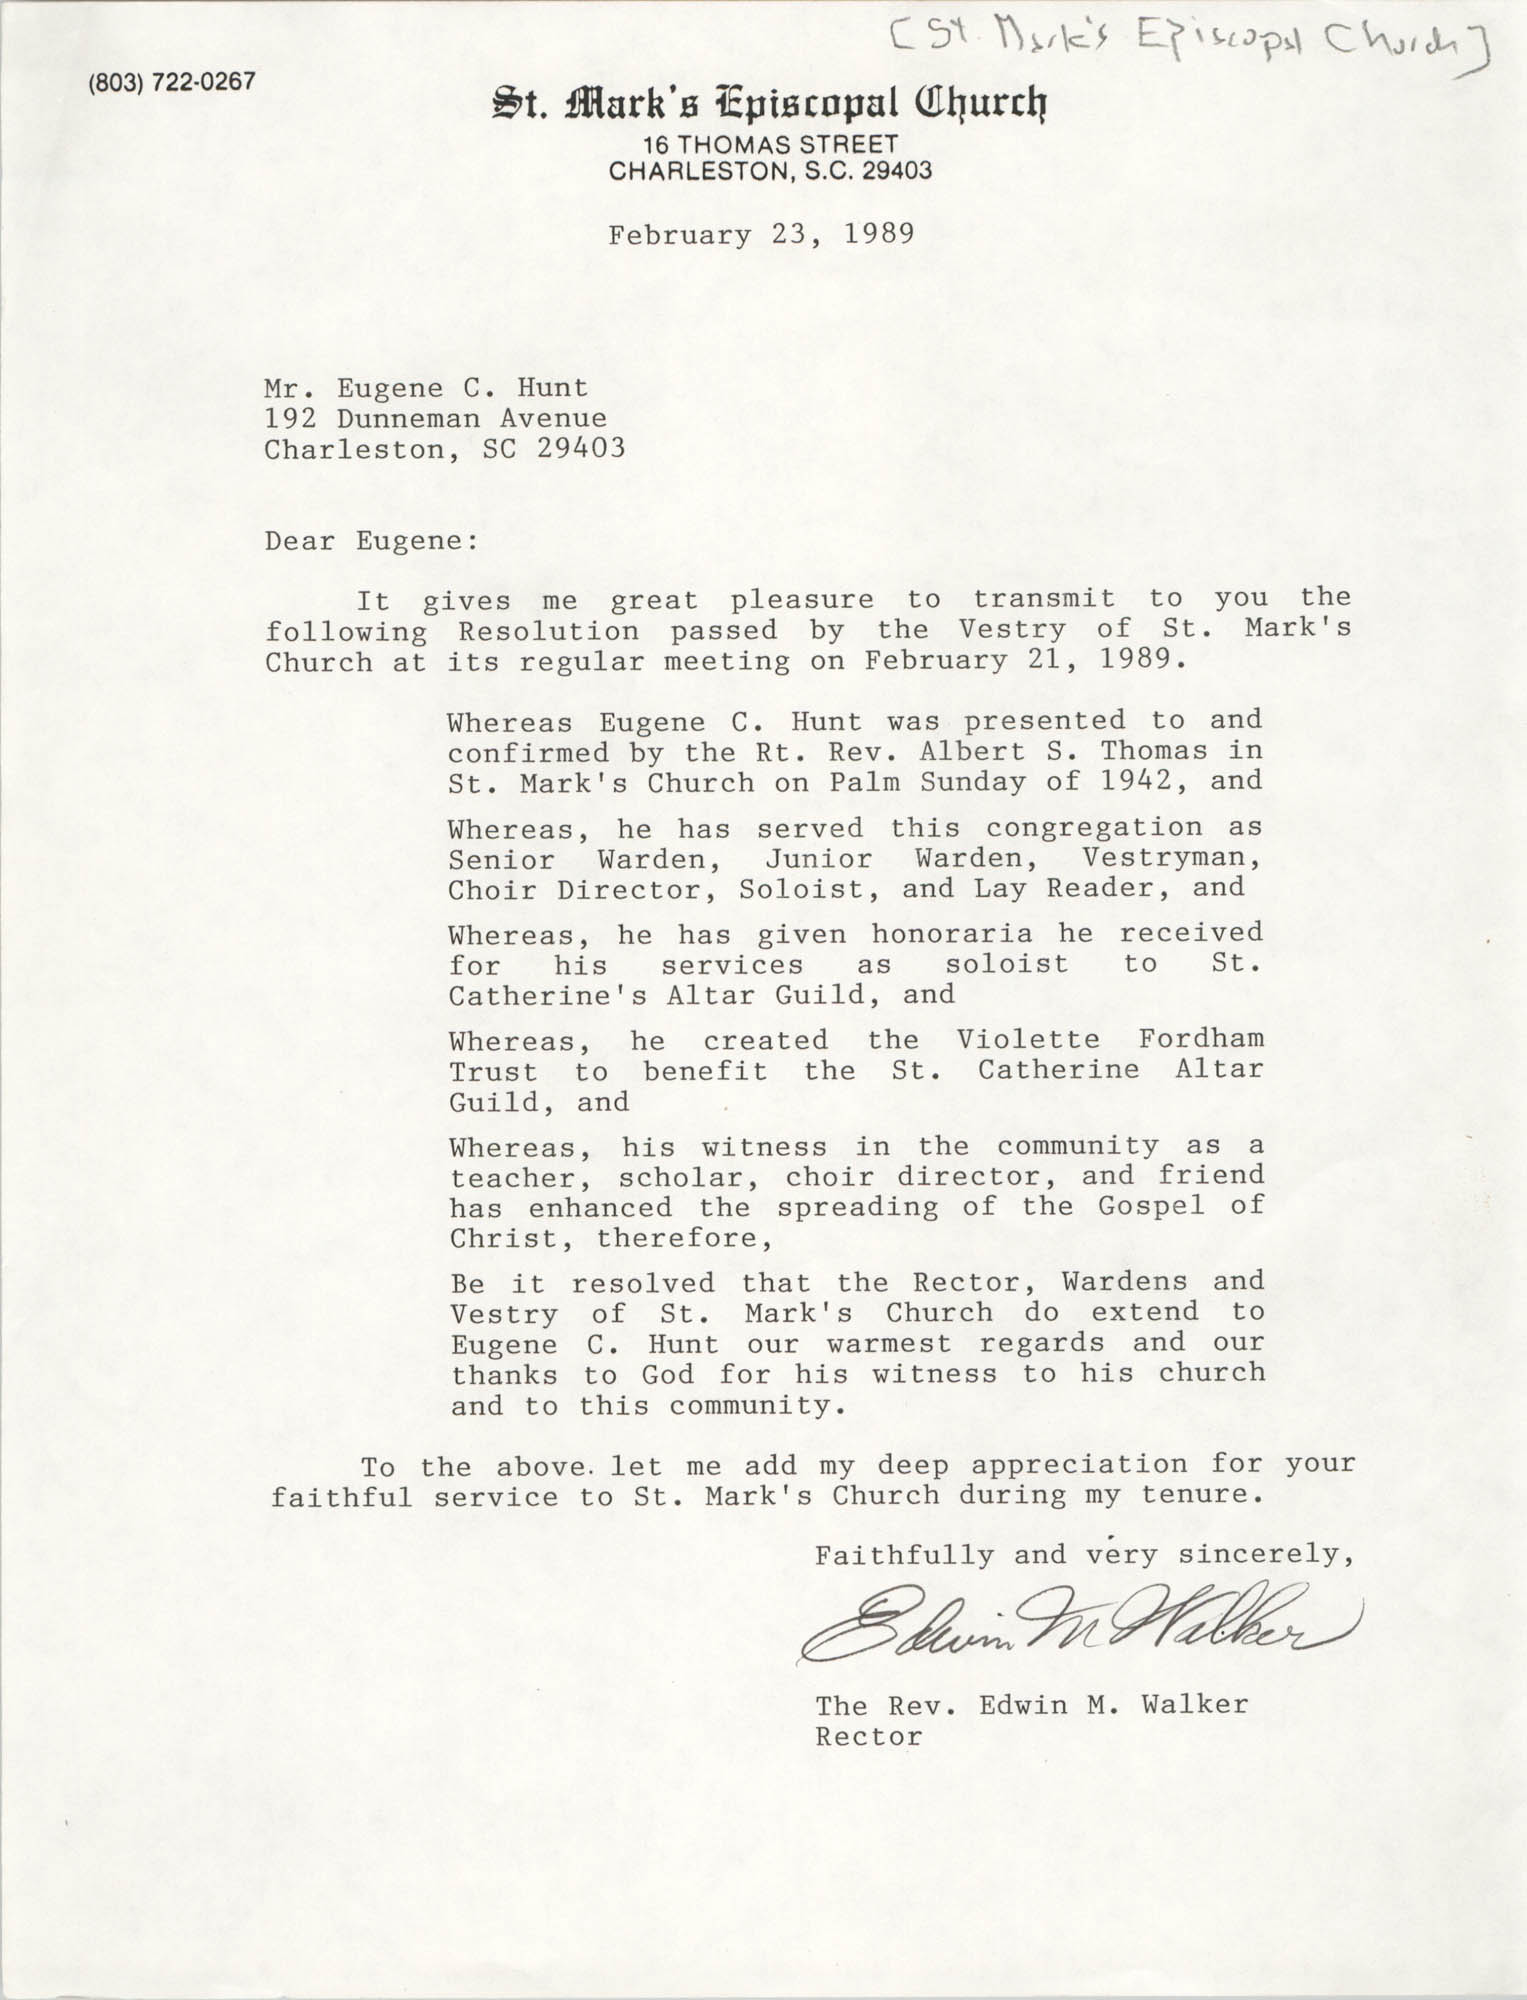 Letter from Edwin M. Walker to Eugene C. Hunt, February 23, 1989